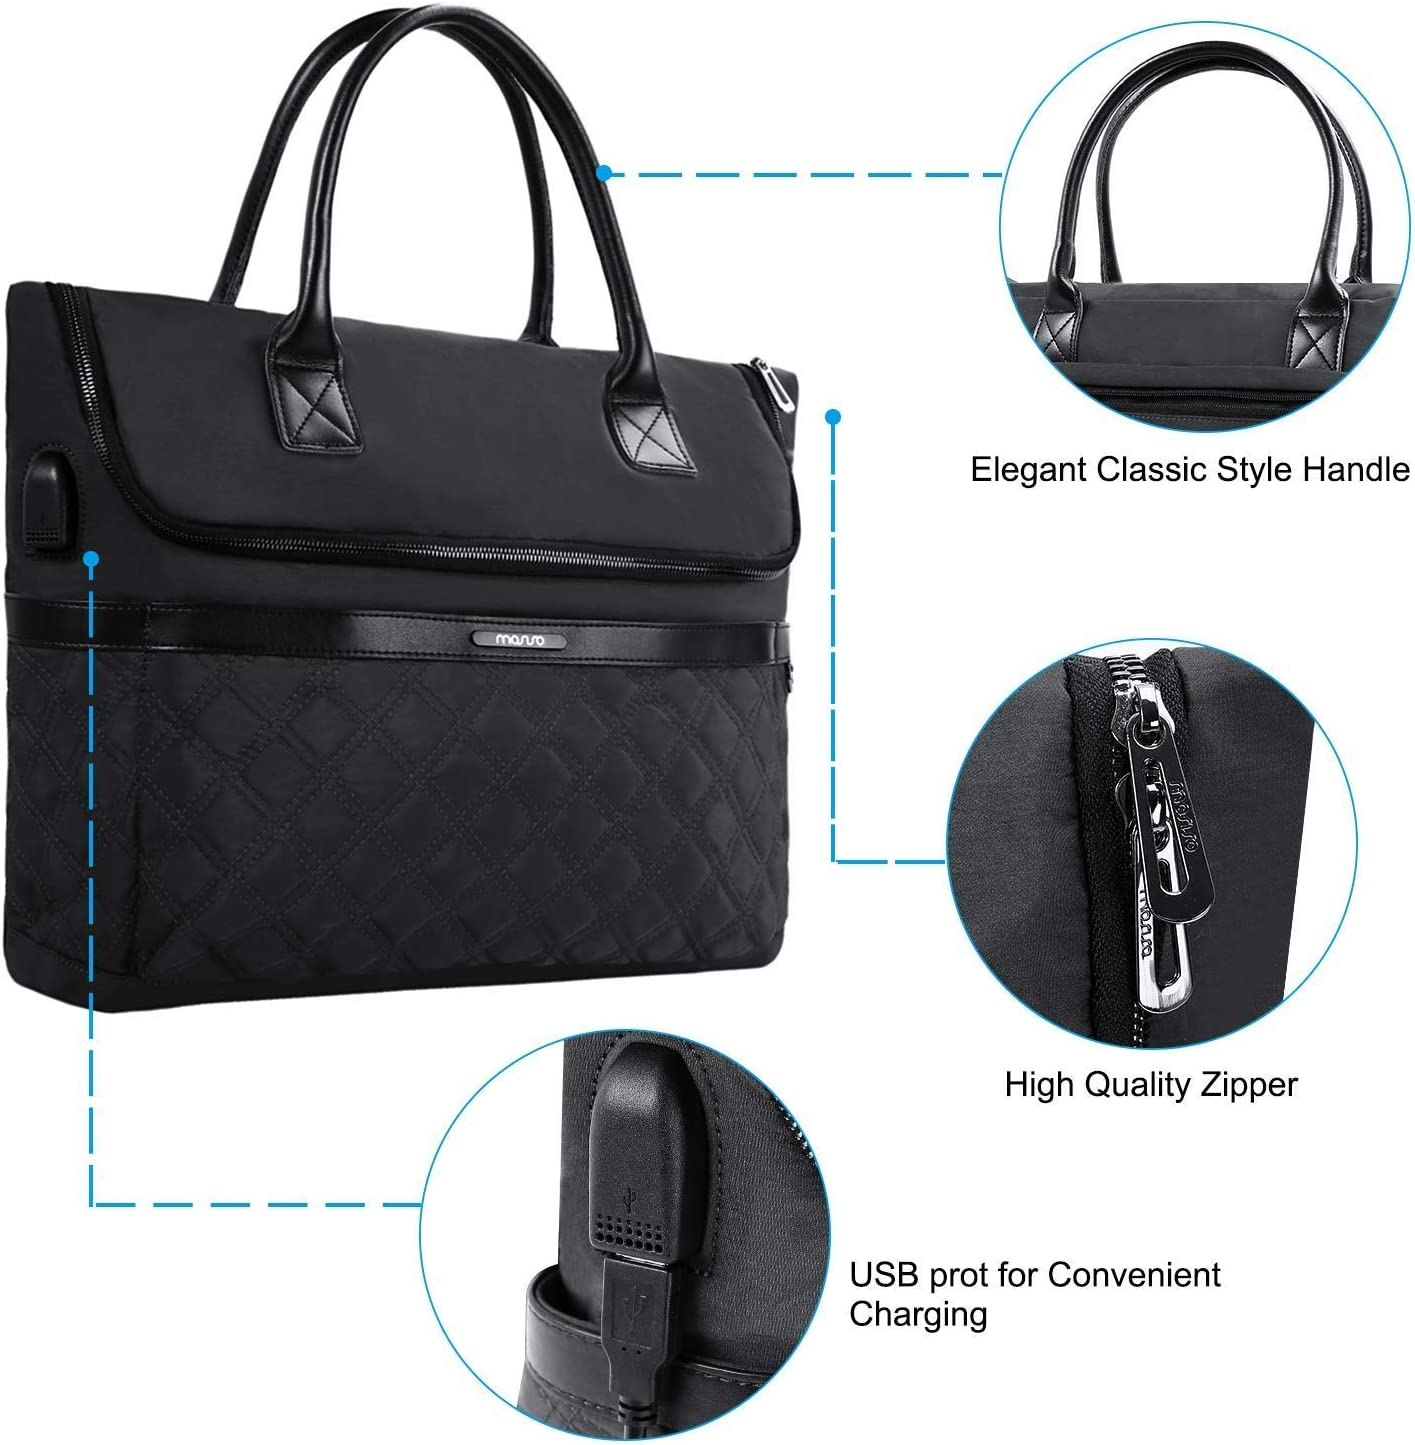 Notebook Up to 17.3 Inch MOSISO Laptop Tote Bag with USB Charging Port Polyester /& Microfiber Multifunctional Business Work Office Travel Shopping Carrying Handbag Compatible MacBook Black